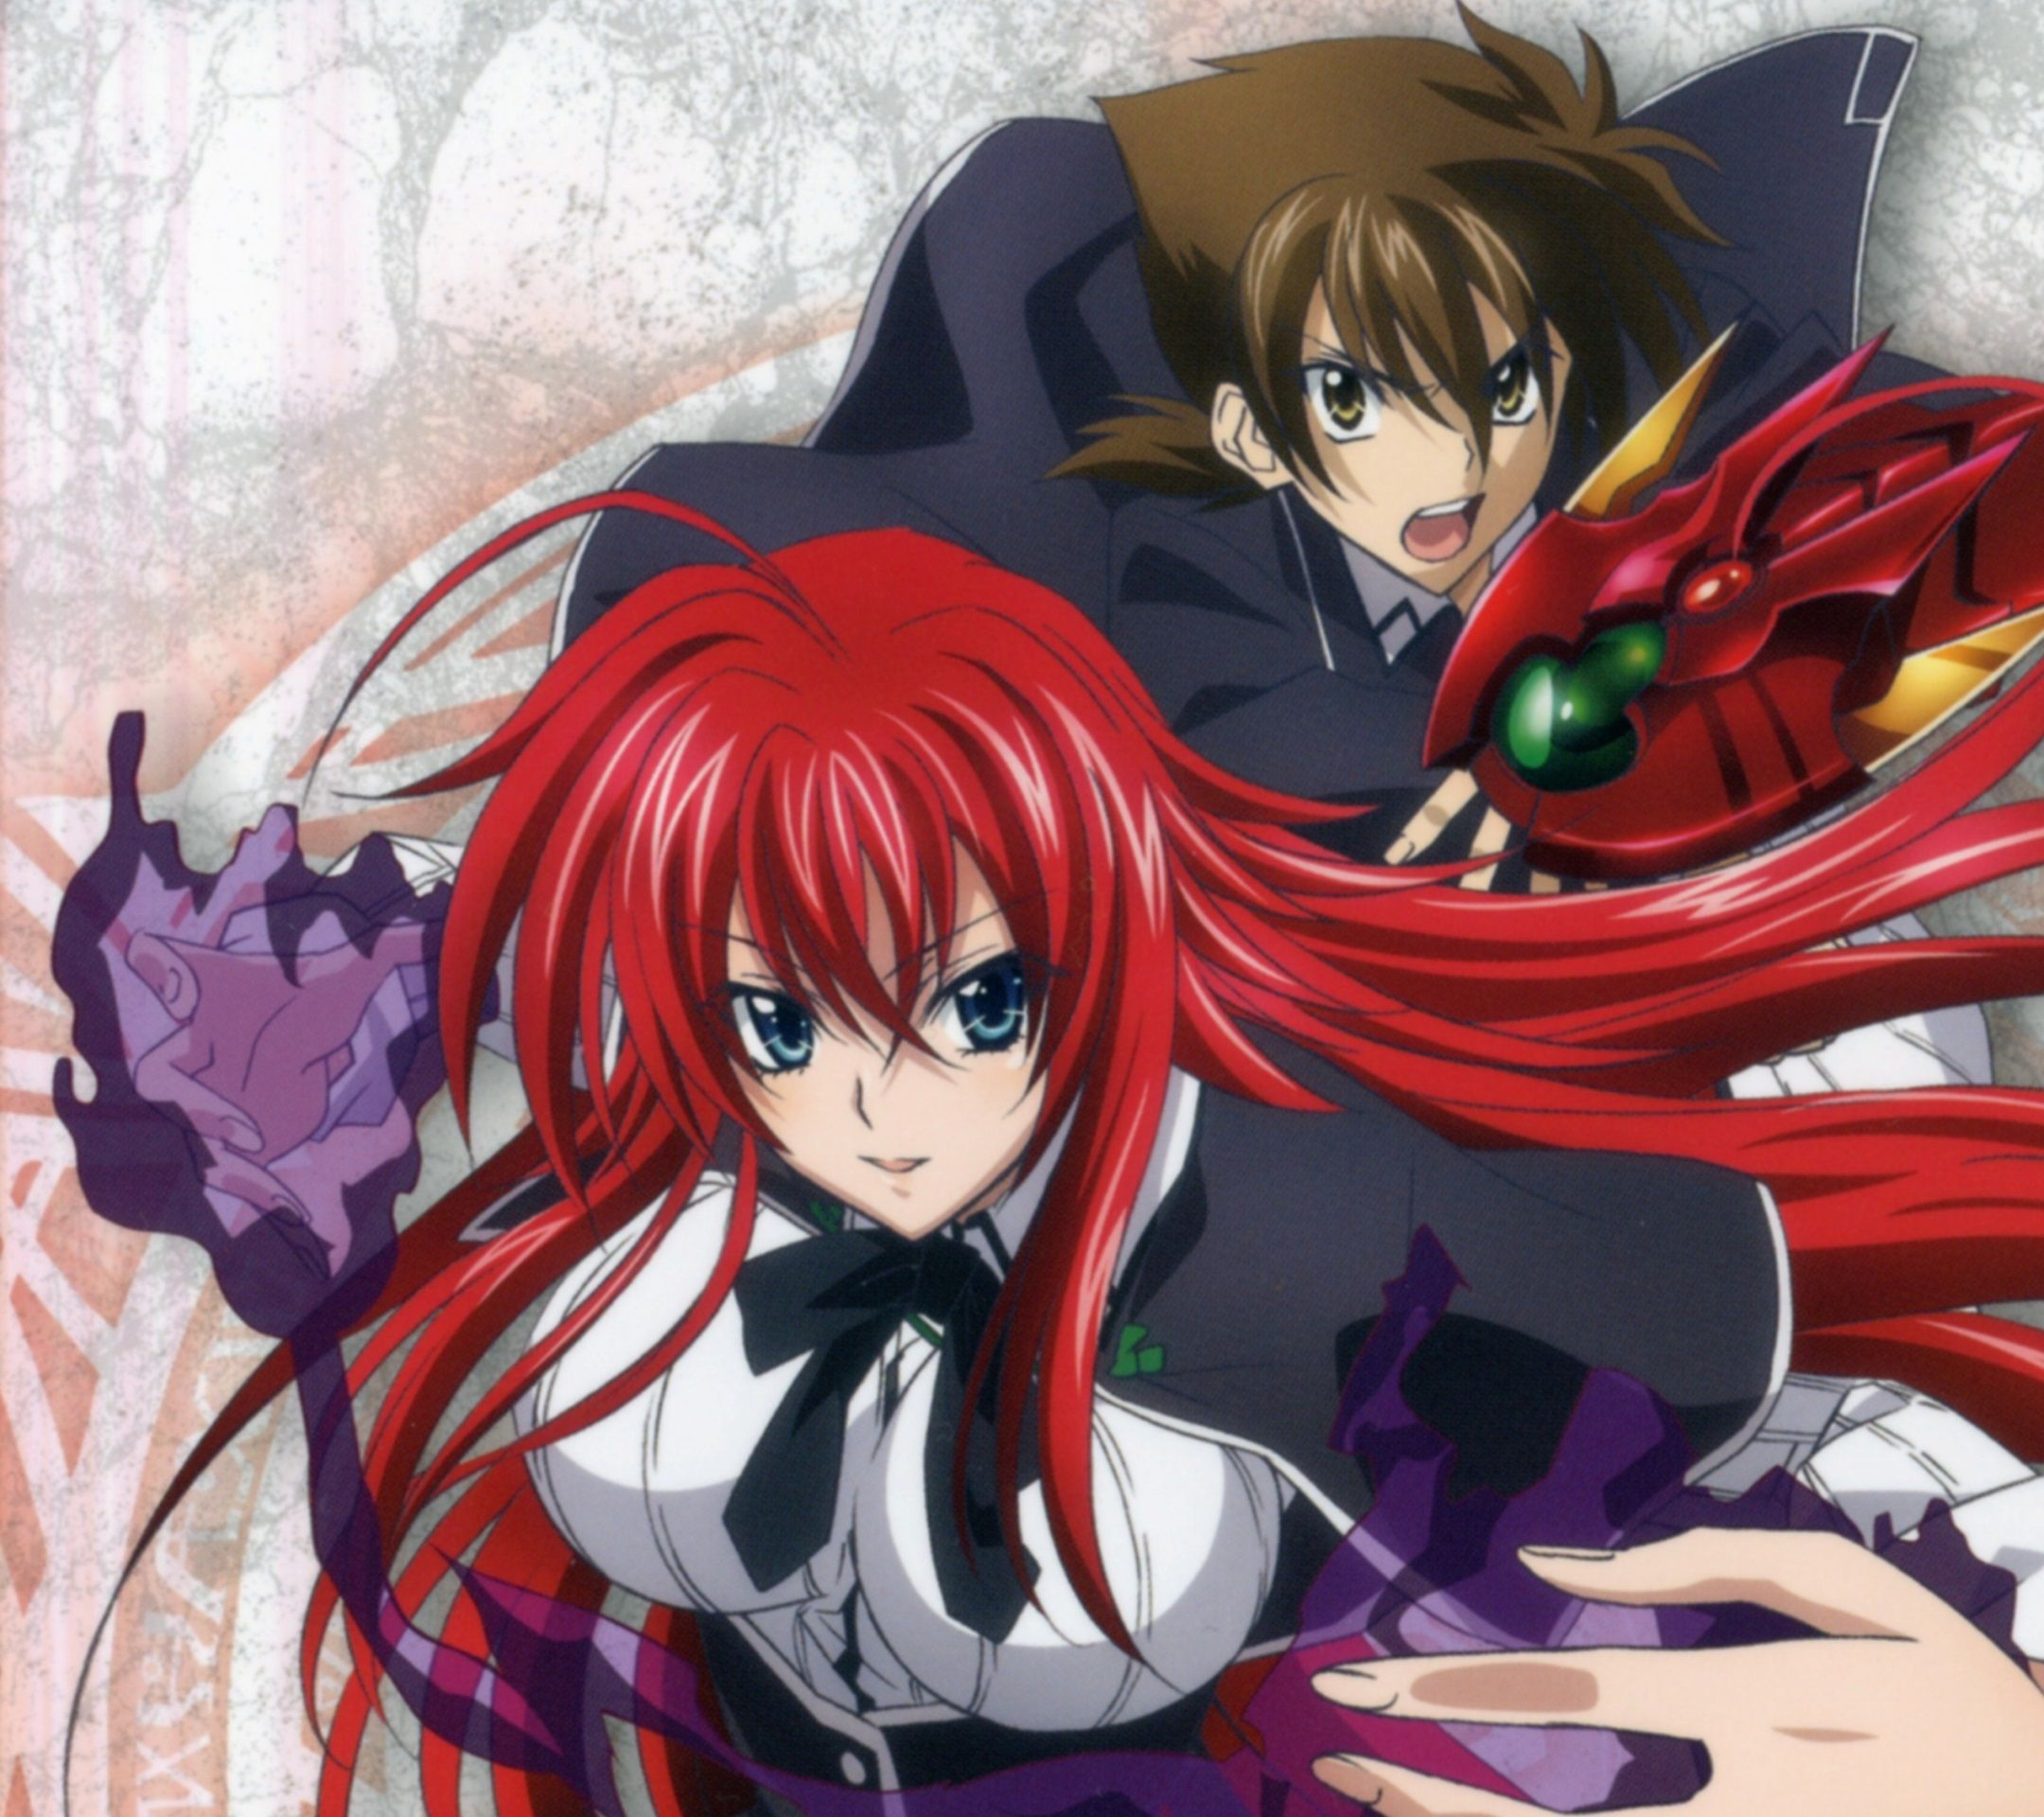 Anime High School DxD Rias Wallpapers - Wallpaper Cave